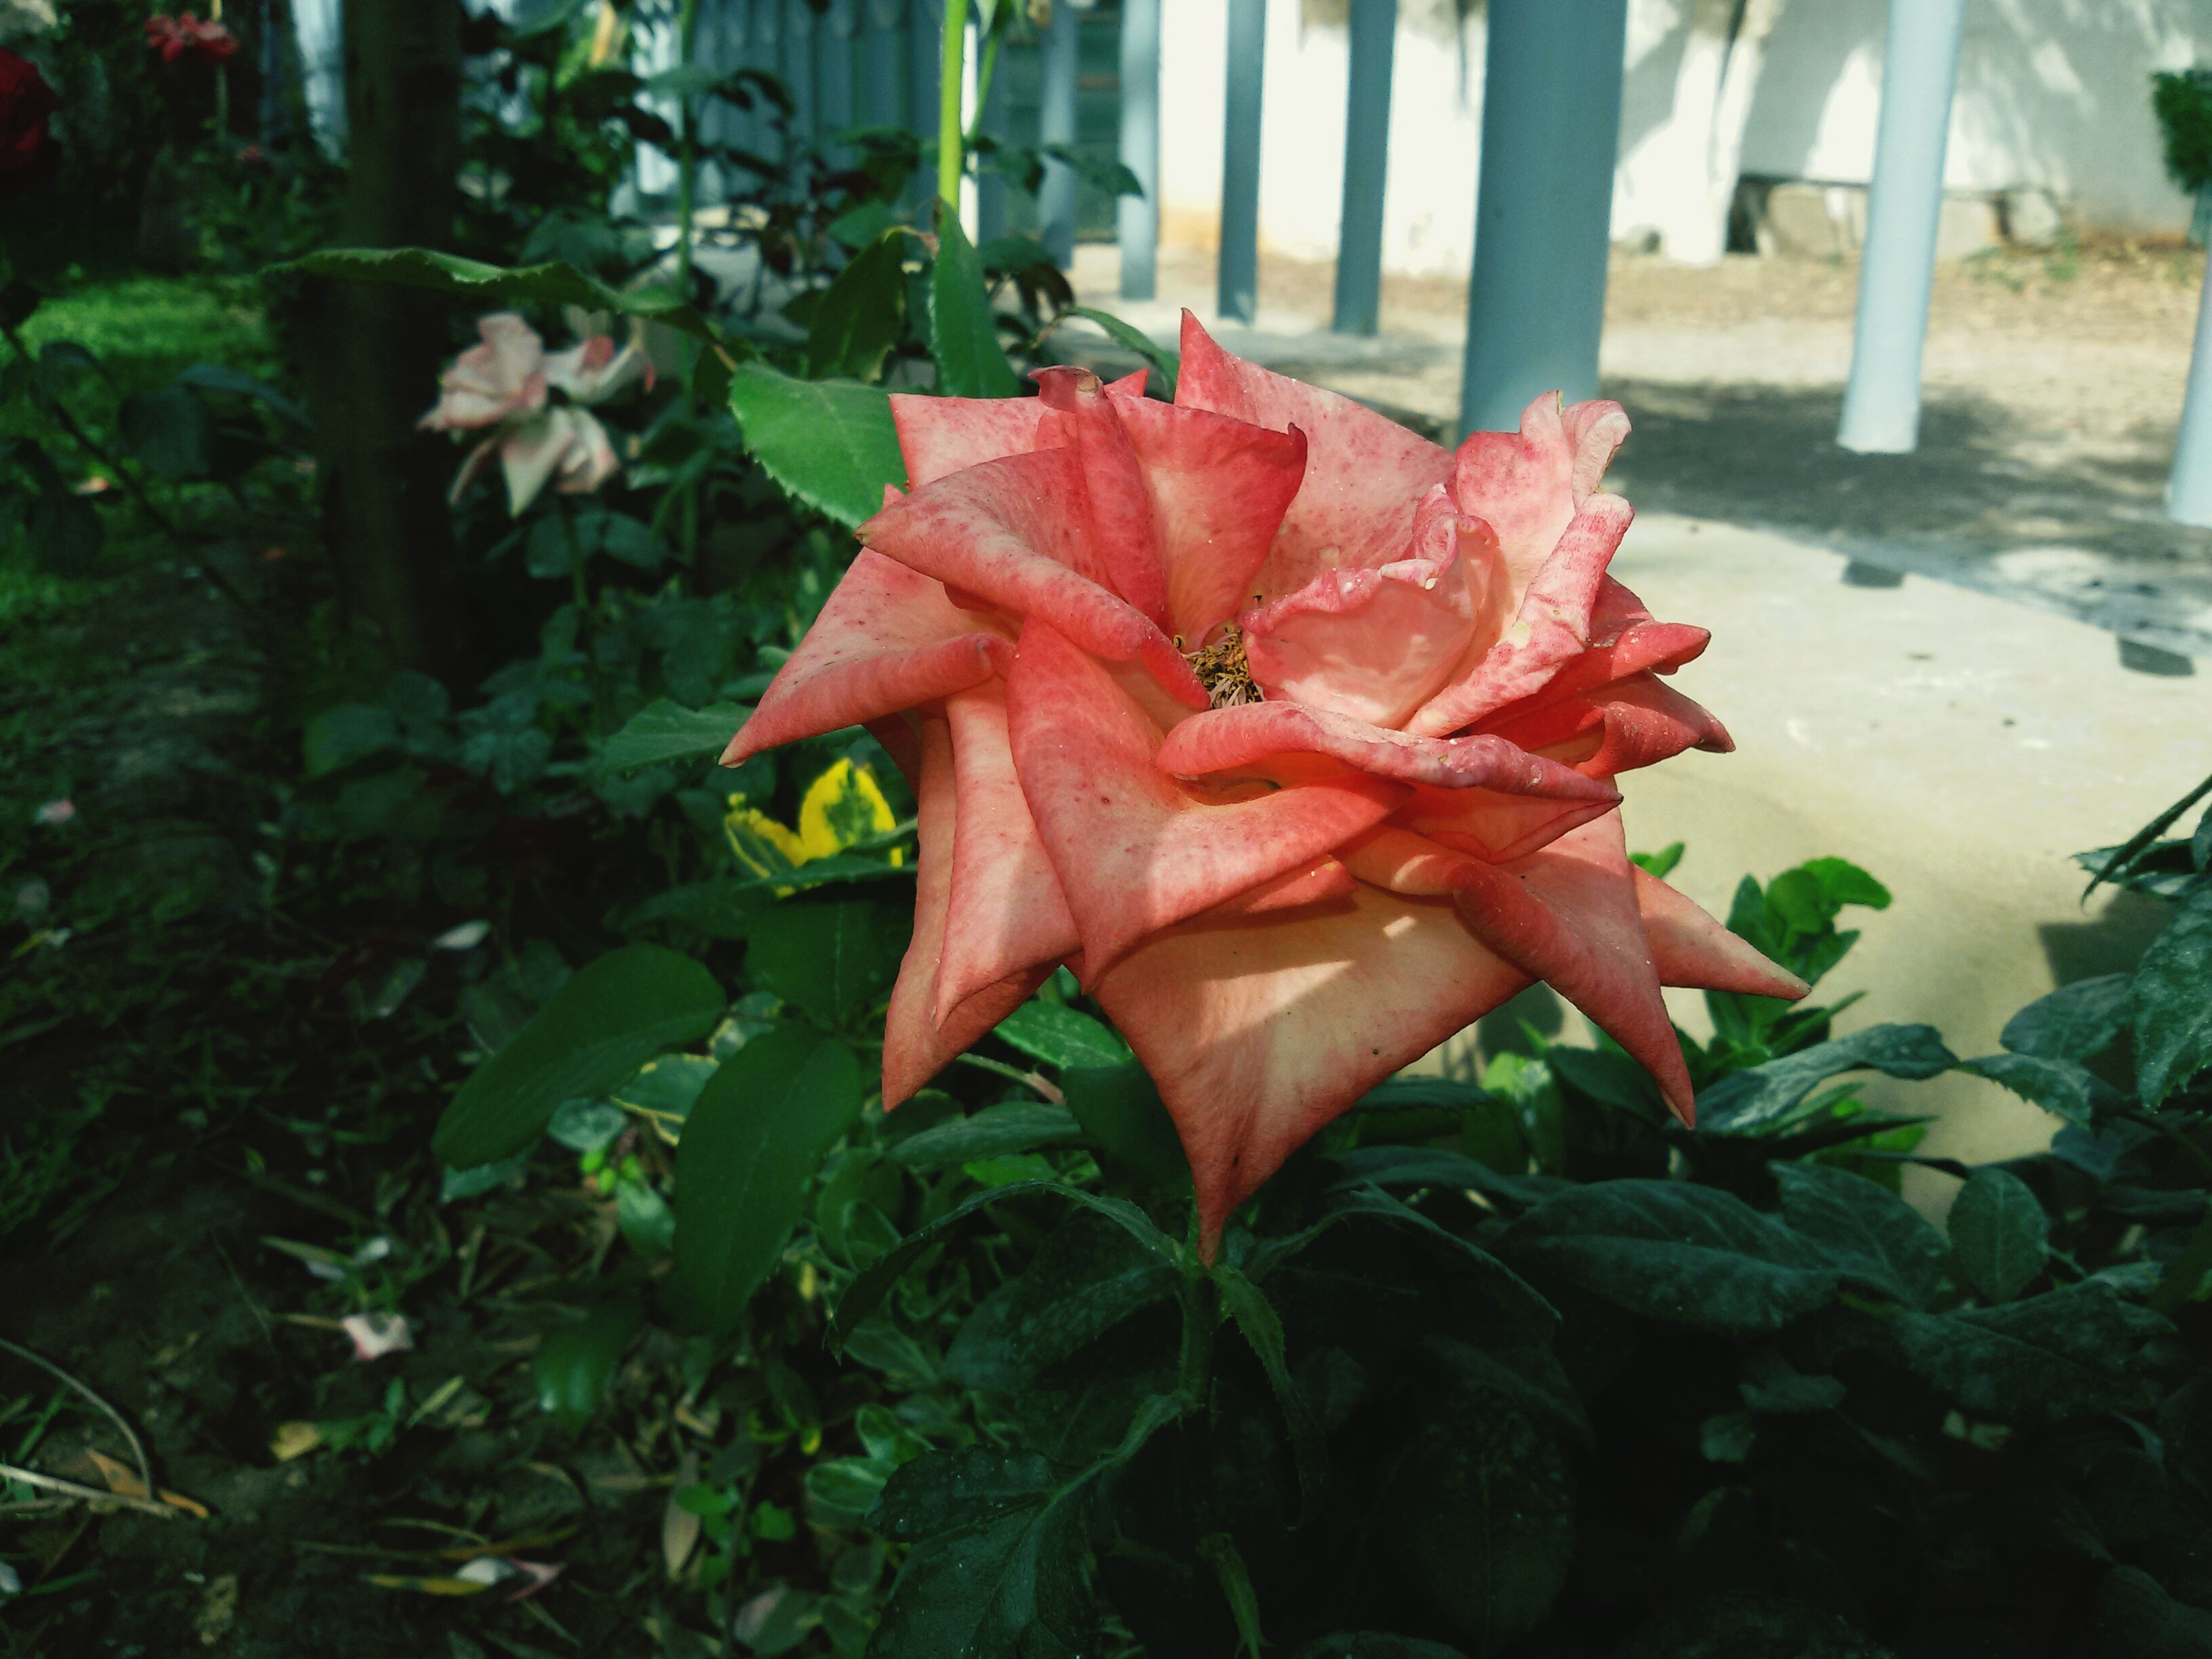 leaf, flower, growth, red, plant, petal, fragility, close-up, freshness, beauty in nature, focus on foreground, flower head, nature, blooming, day, orange color, front or back yard, outdoors, no people, sunlight